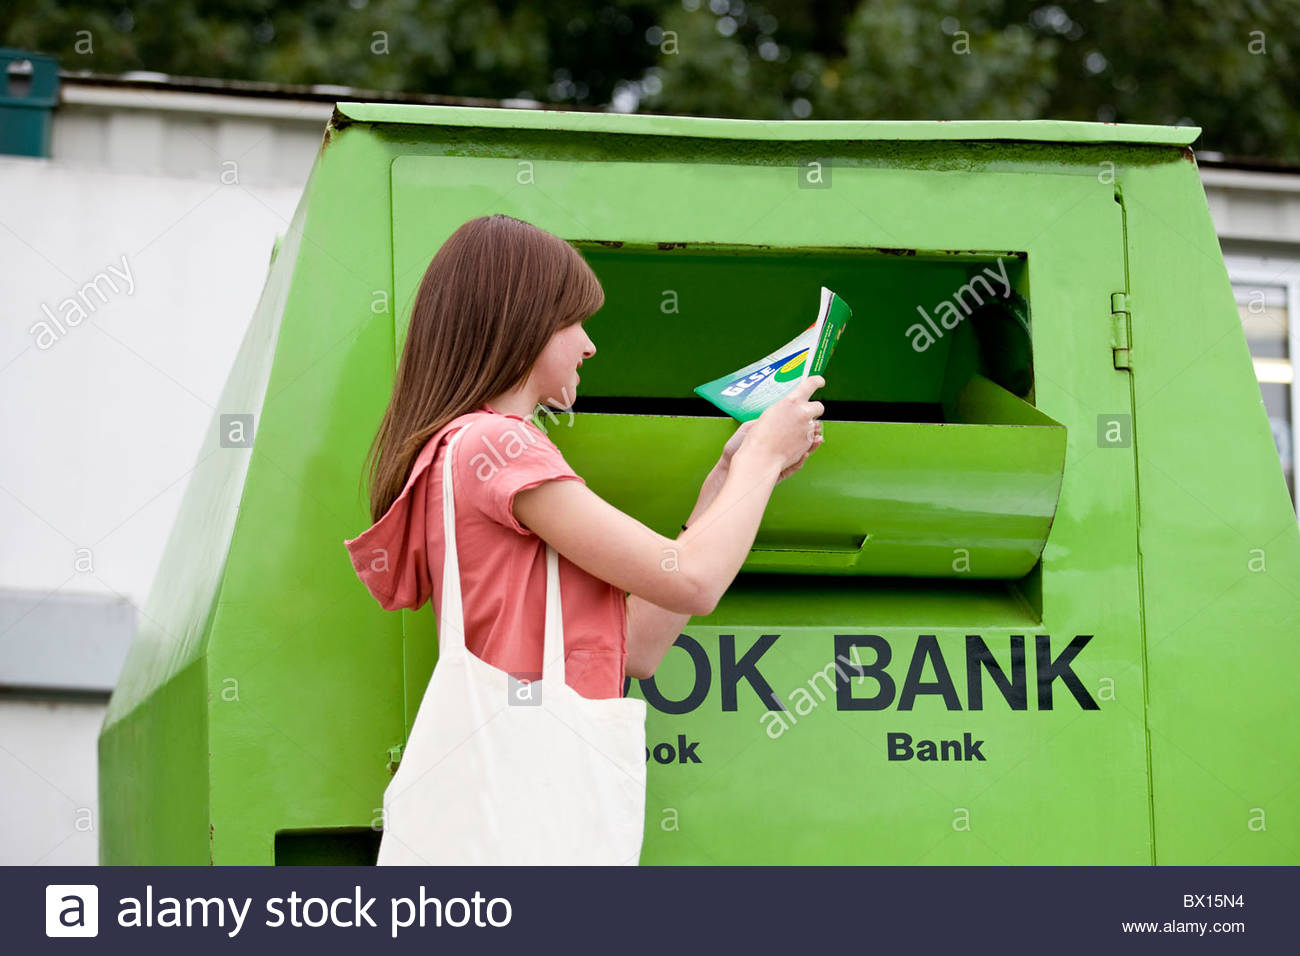 A teenage girl recycling a school textbook - Stock Image